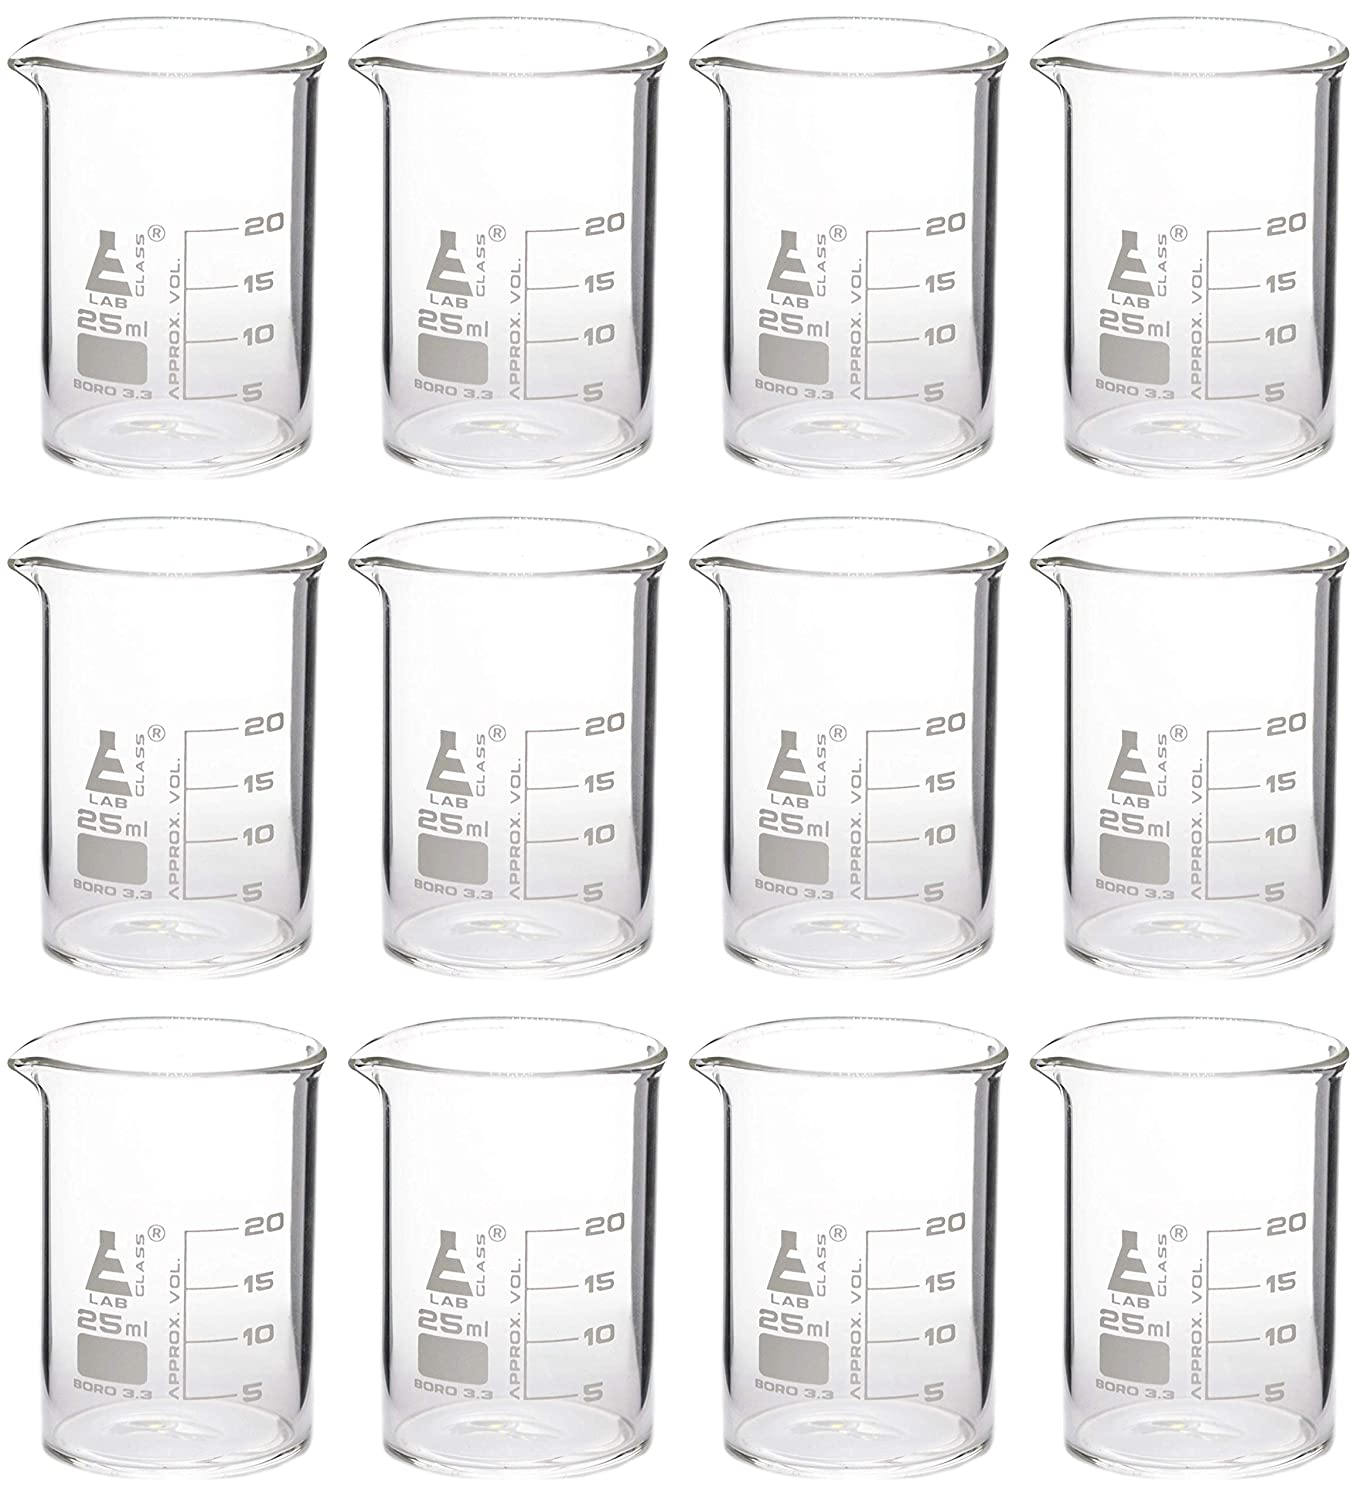 Eisco Labs Beaker - 25mL, Borosilicate Glass, 5mL graduation Low form - Pack of 12